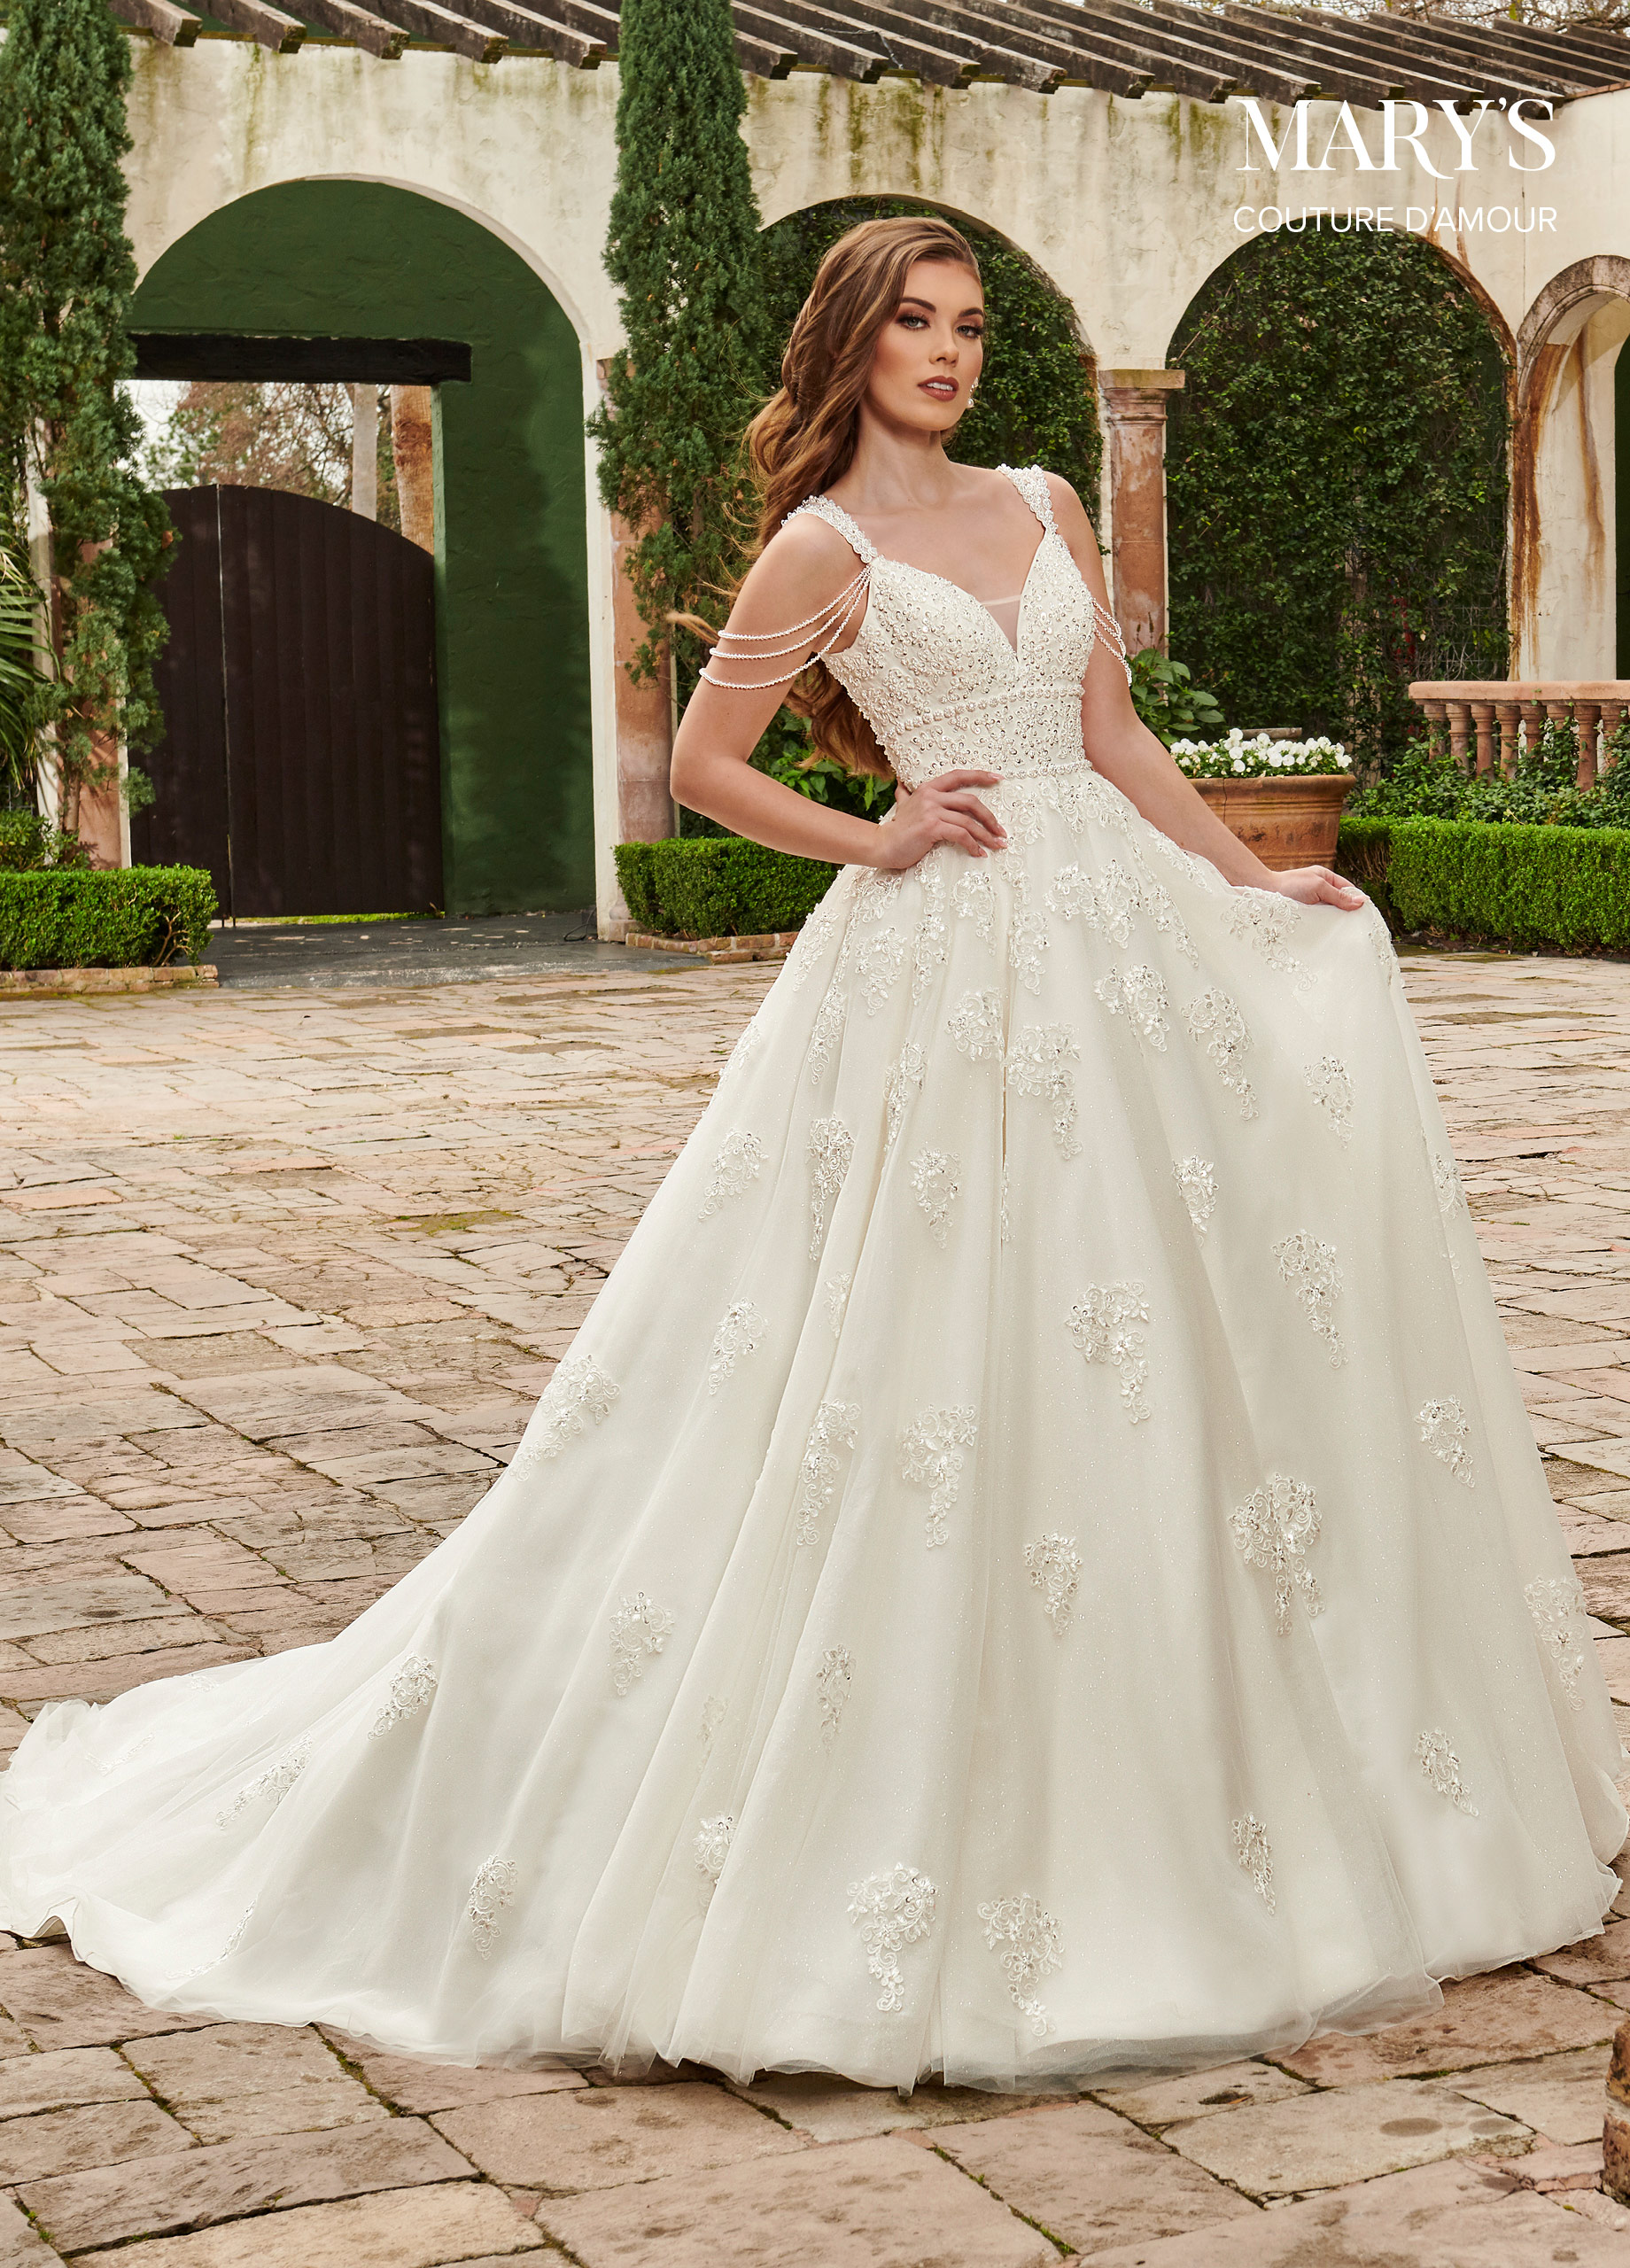 Couture Damour Bridal Dresses   Couture d'Amour   Style - MB4115